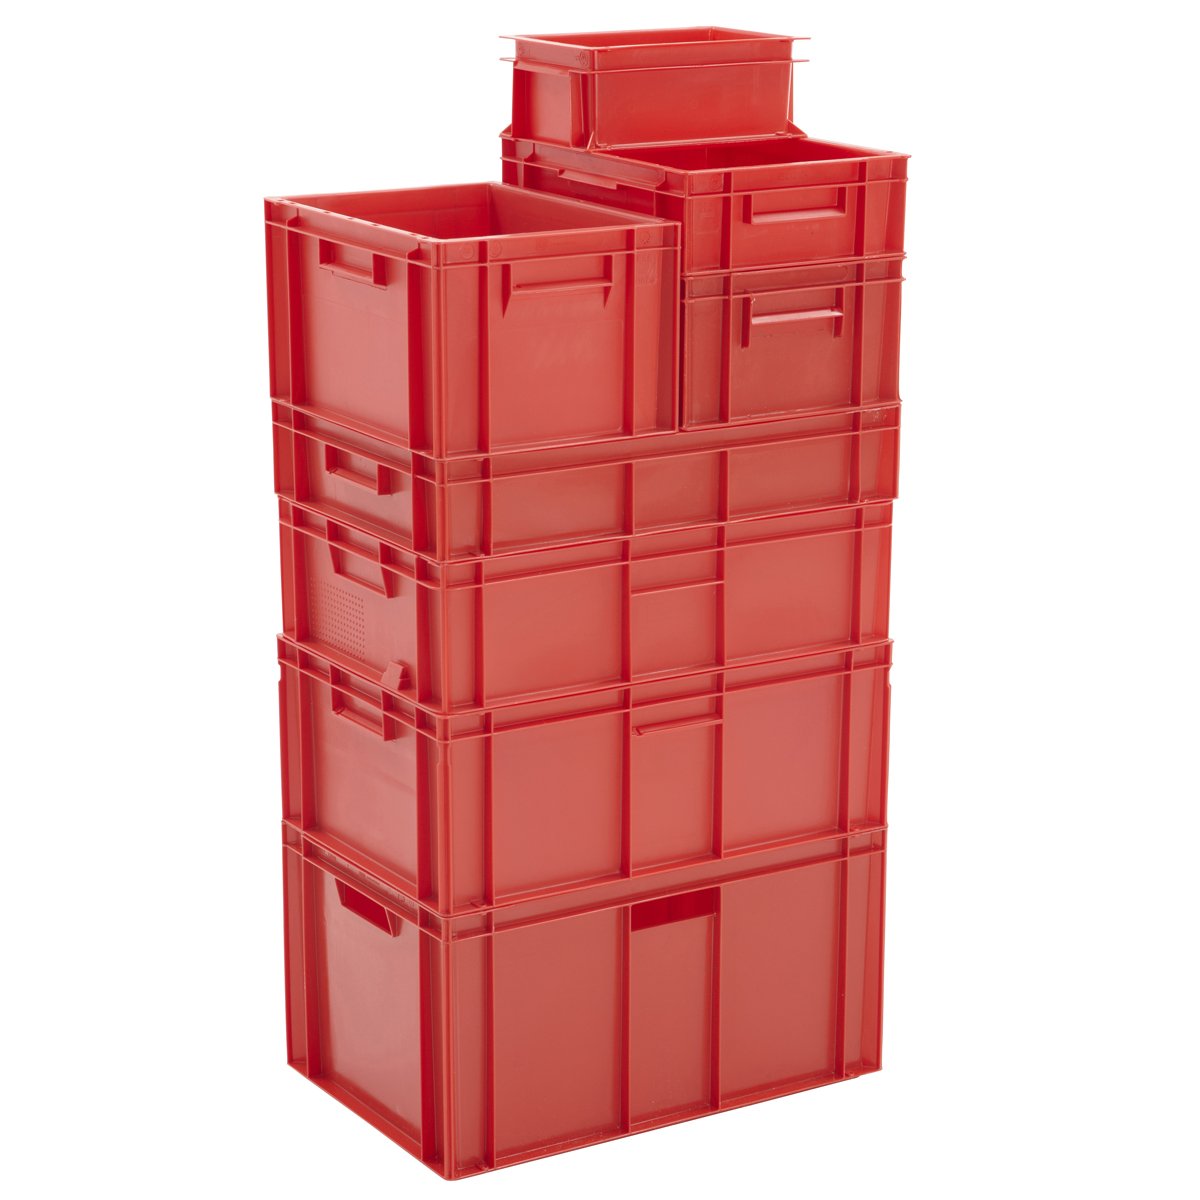 Red Euro Stackable Storage Containers Plastic